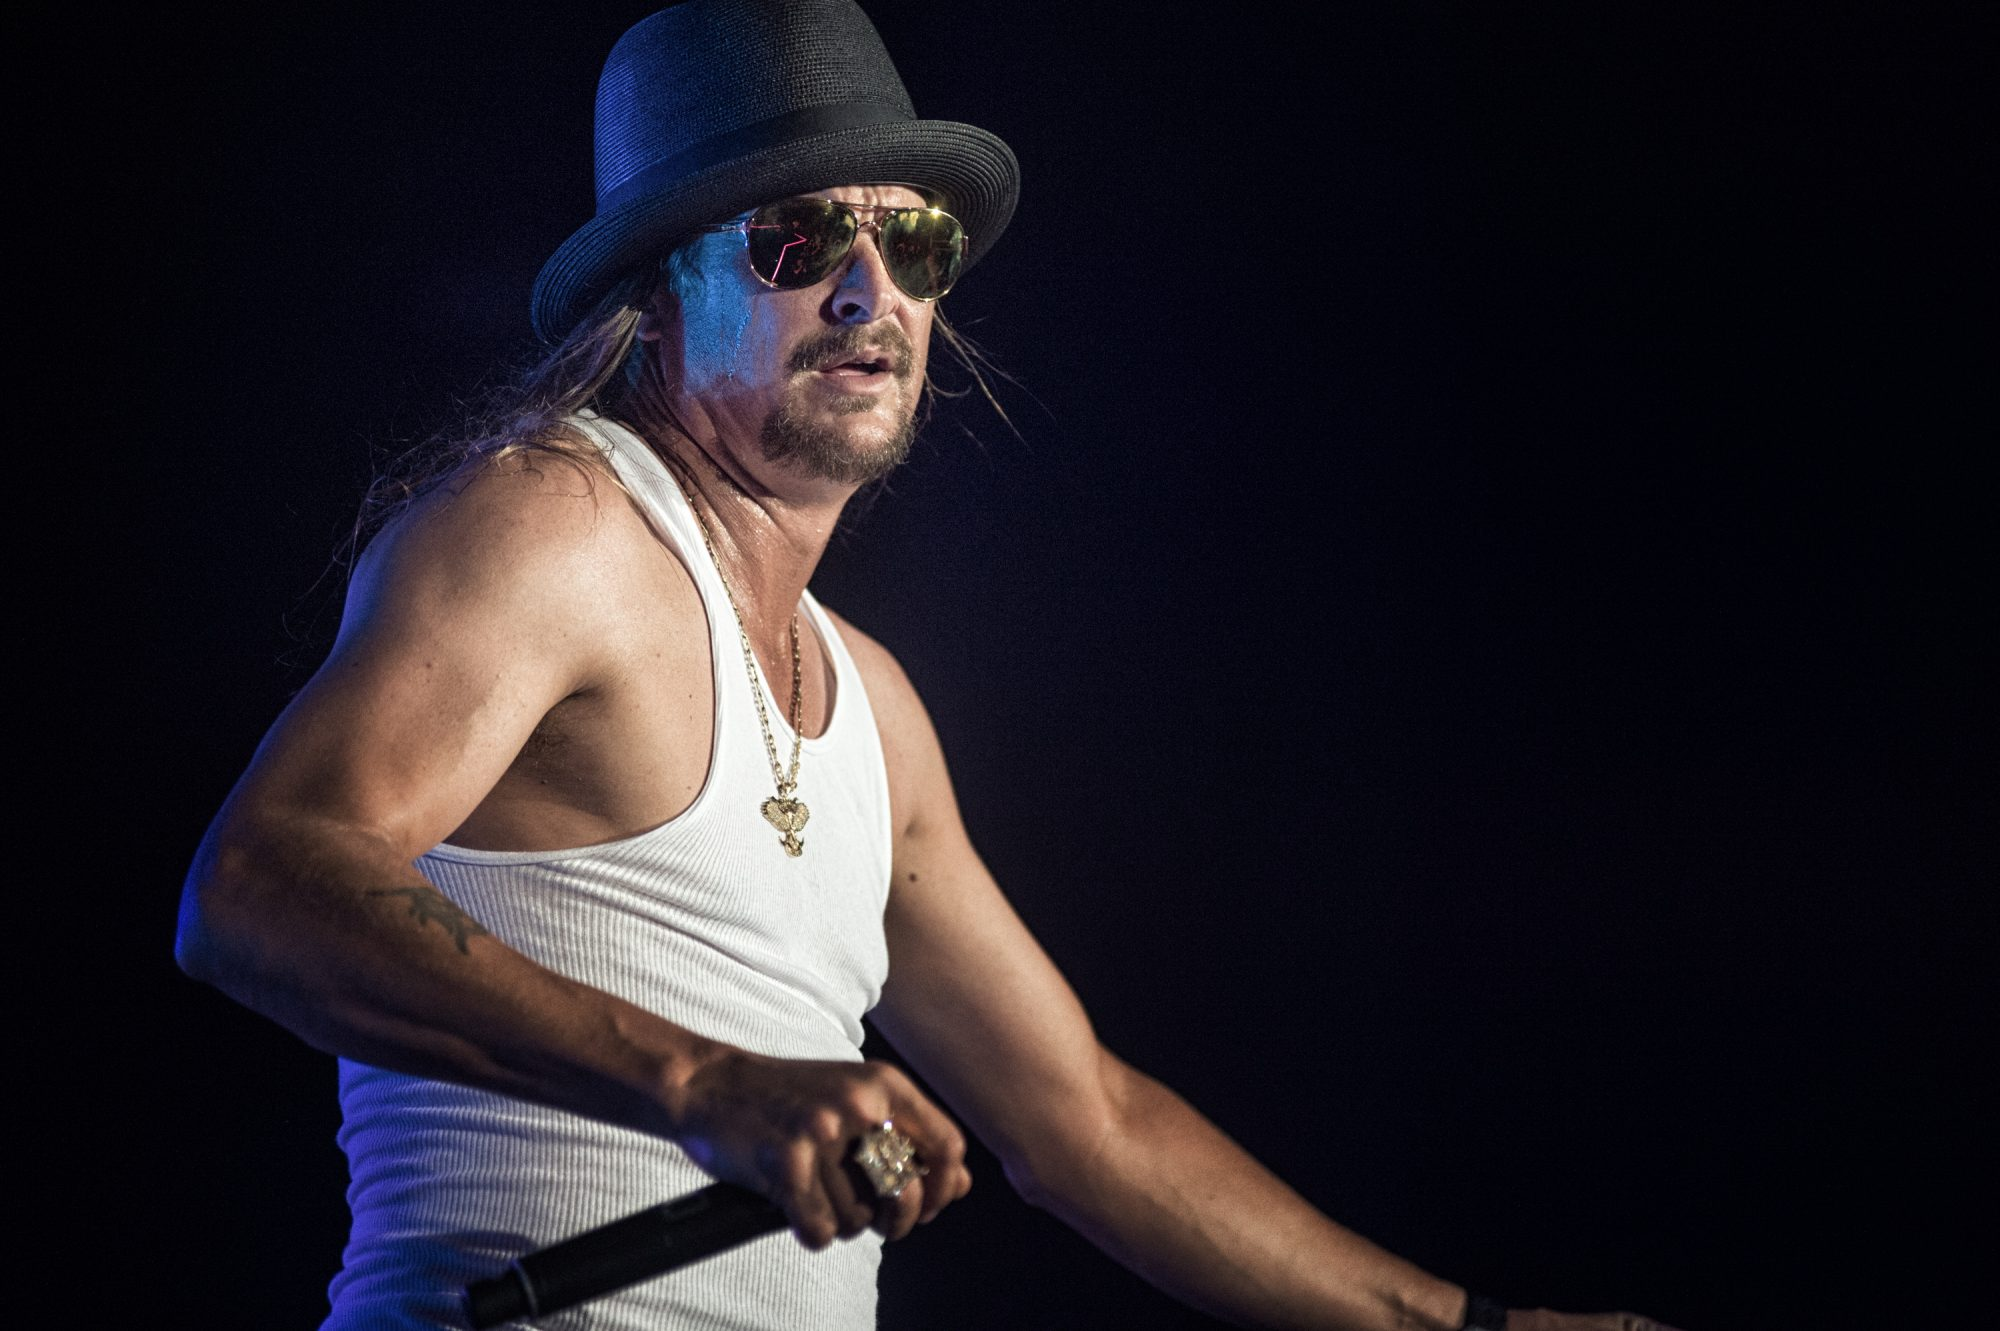 Kid Rock Performs At The Gexa Energy Pavilion In Dallas TX